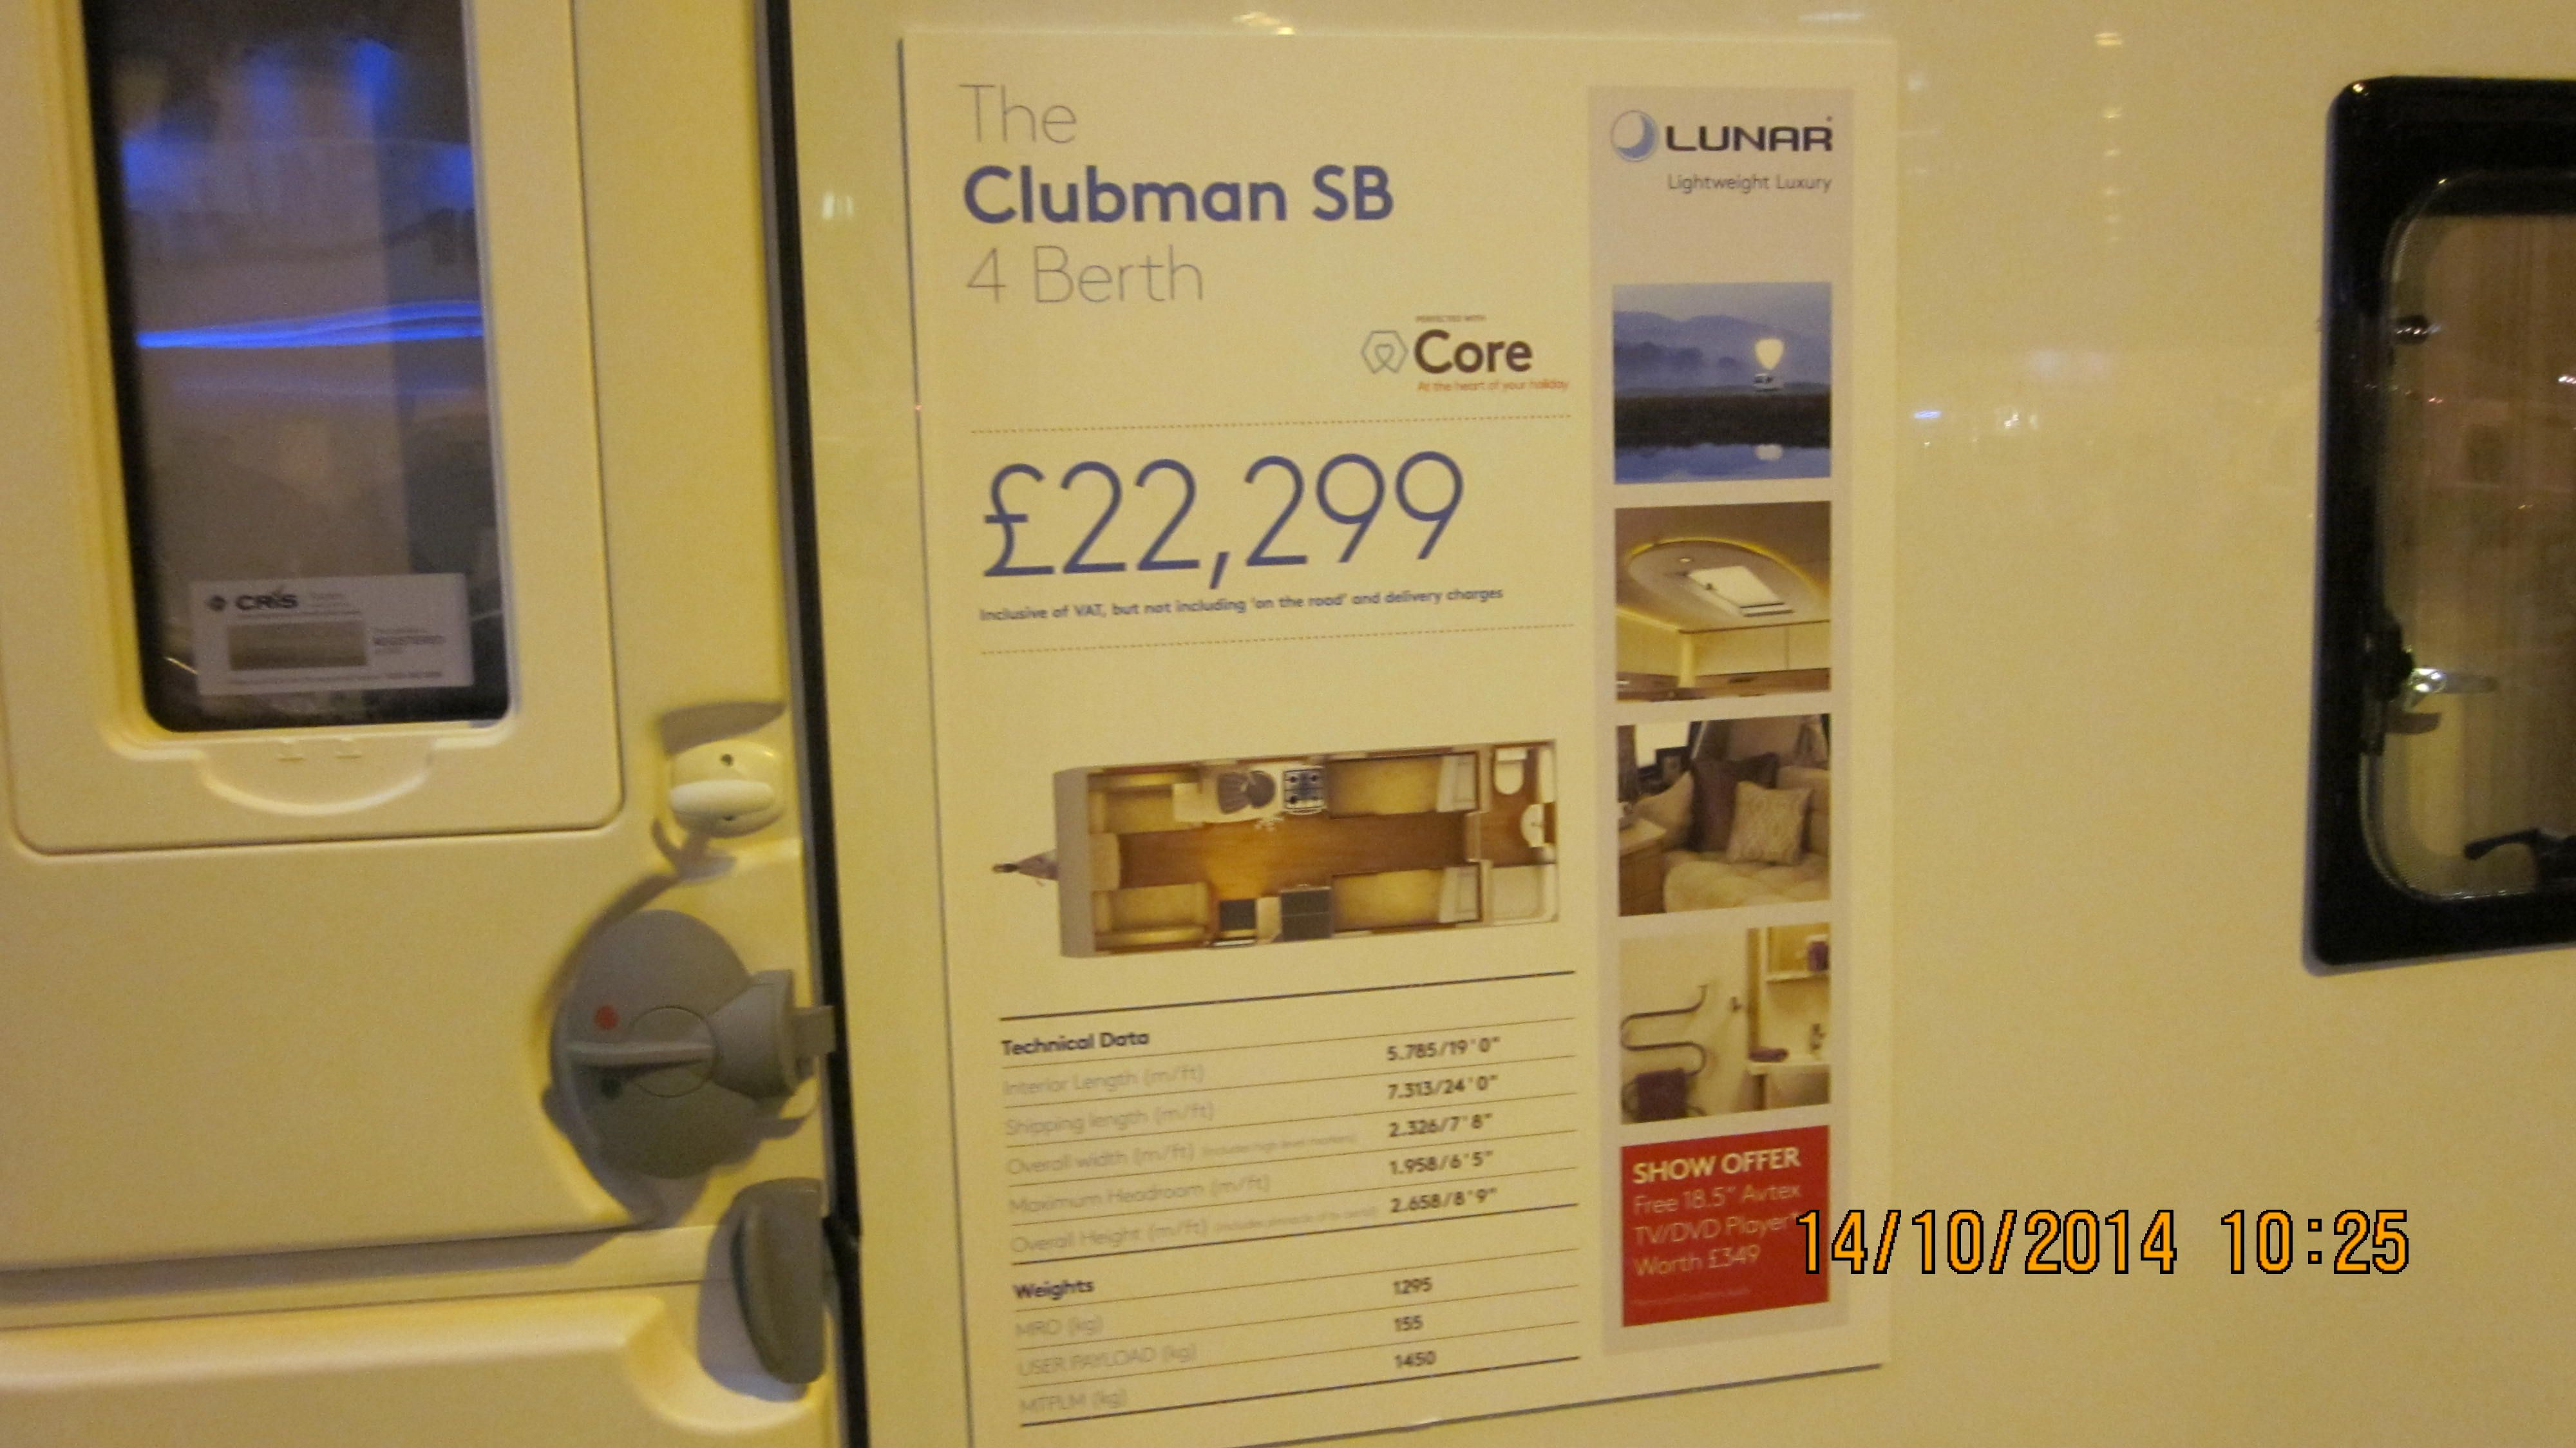 Lunar Clubman Sb Retails At 22299 It Has A Double Bed At Front